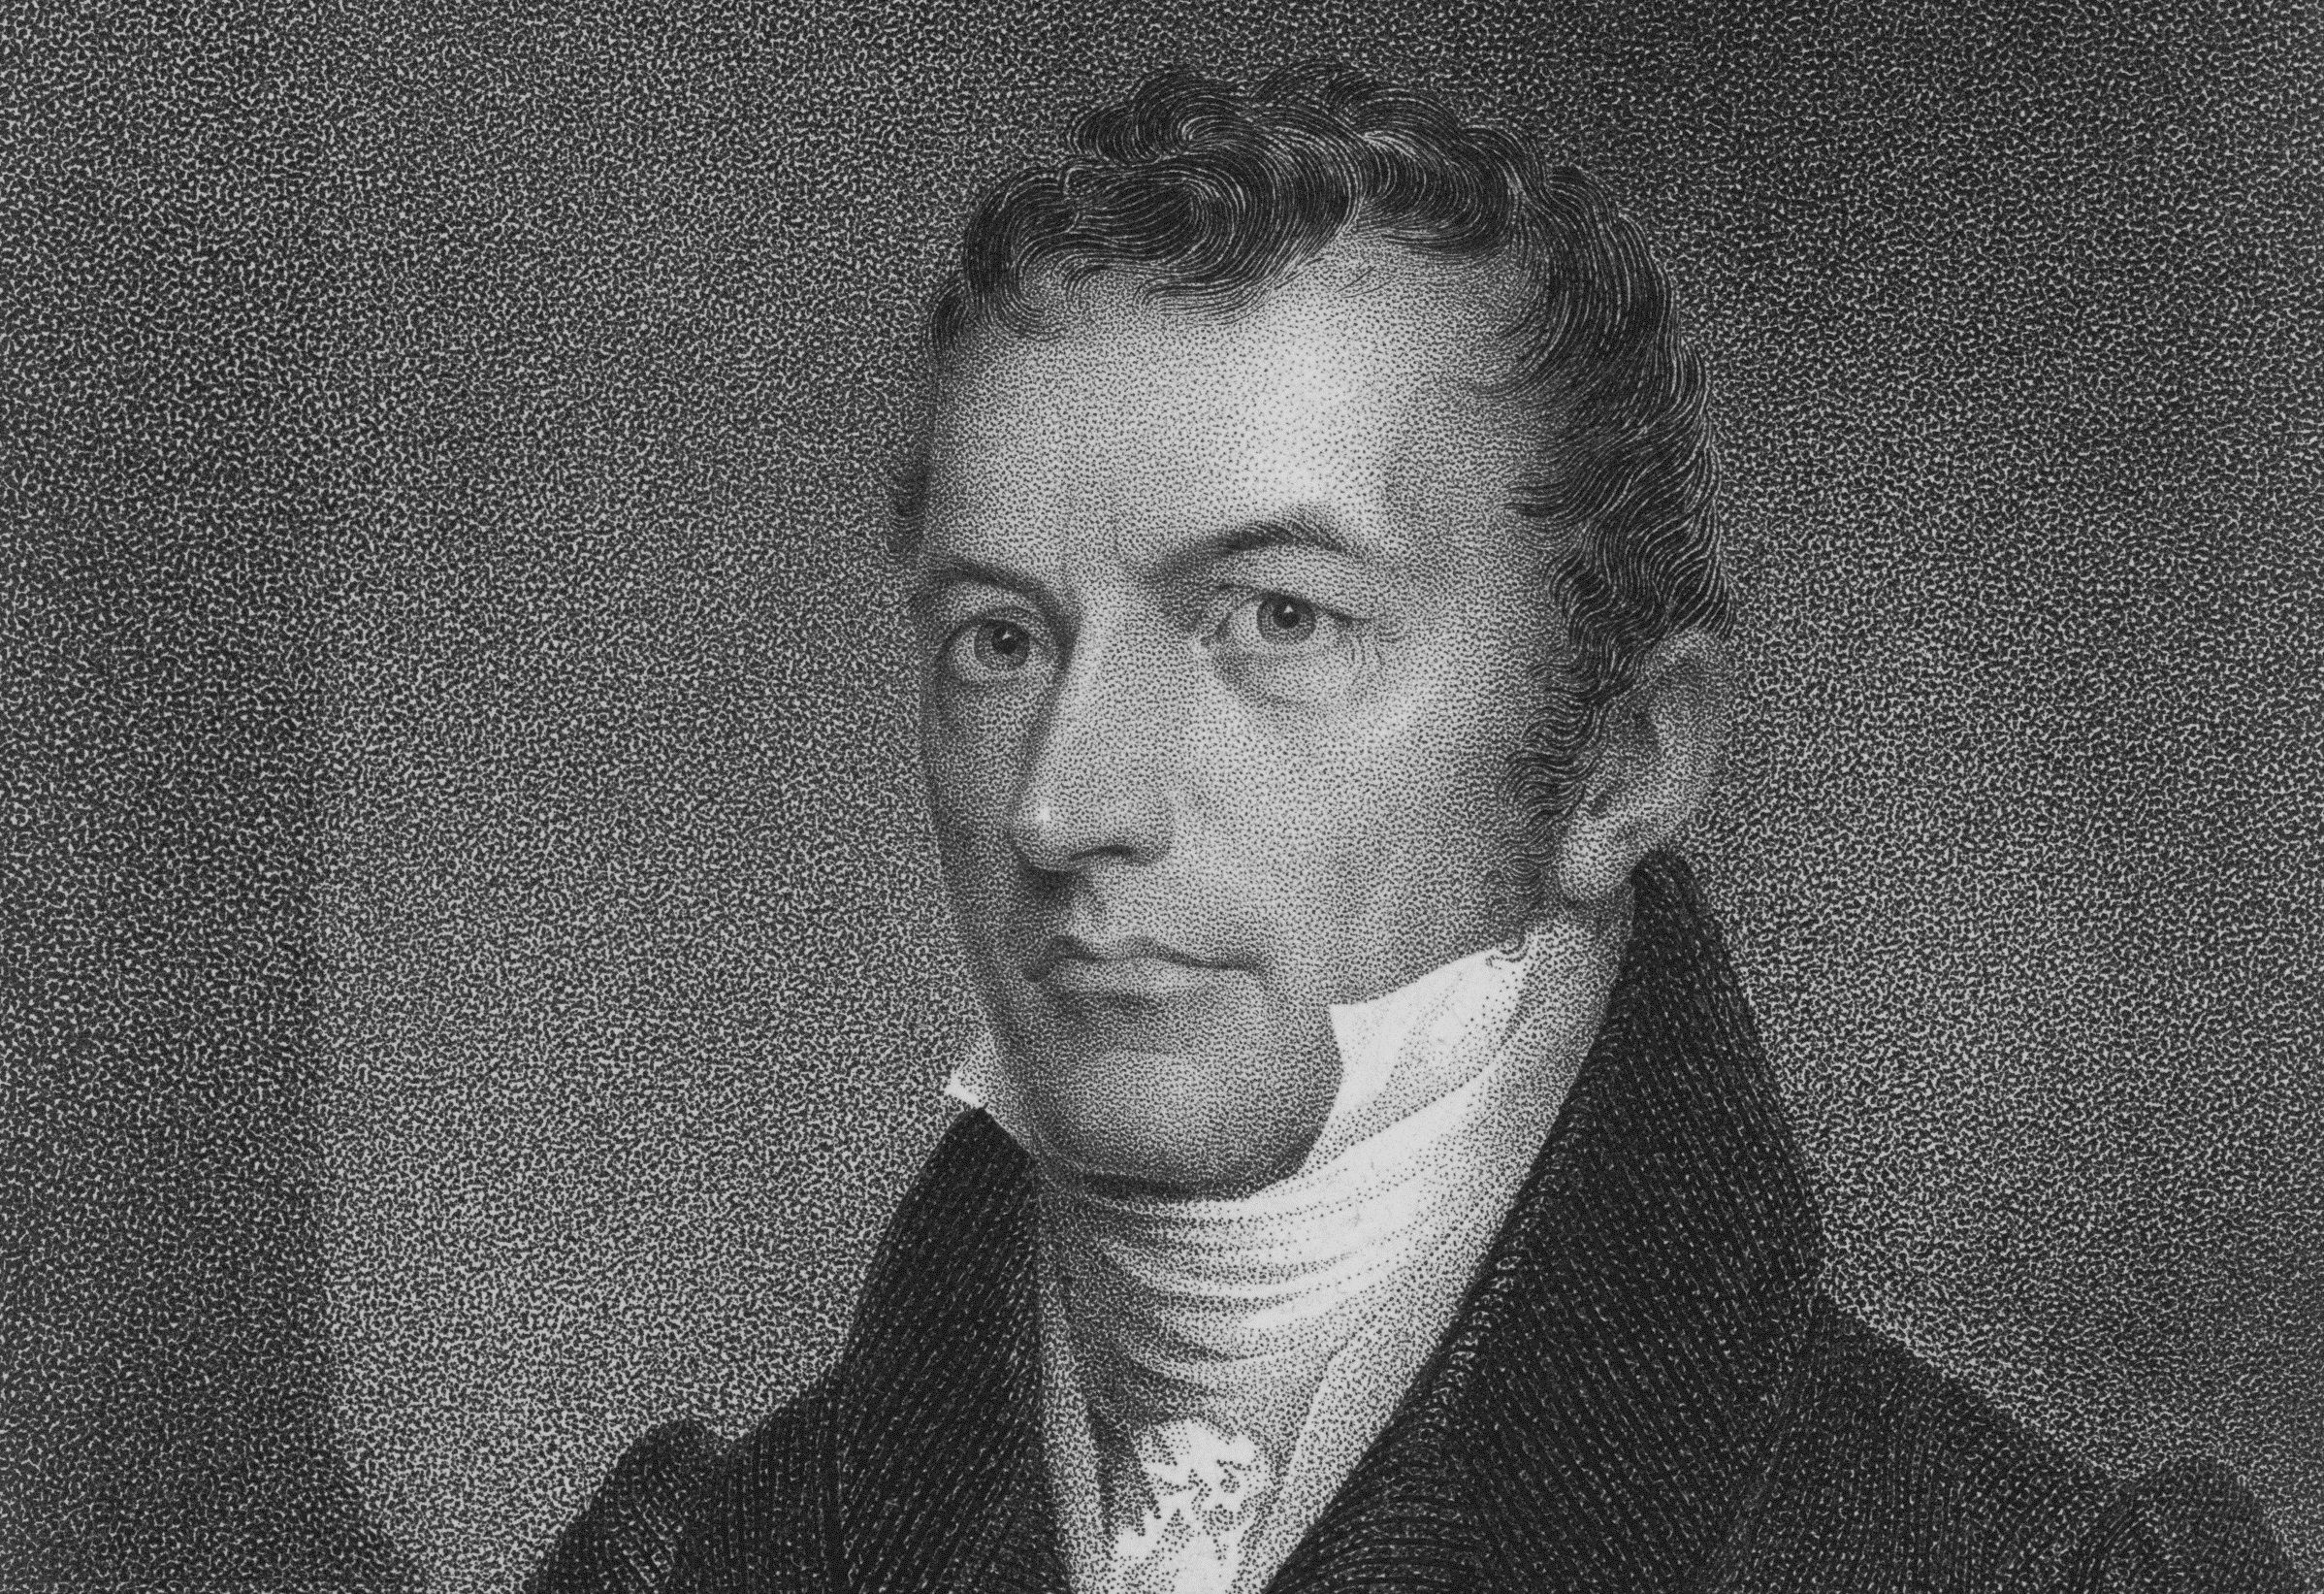 Biography Of Joel Roberts Poinsett